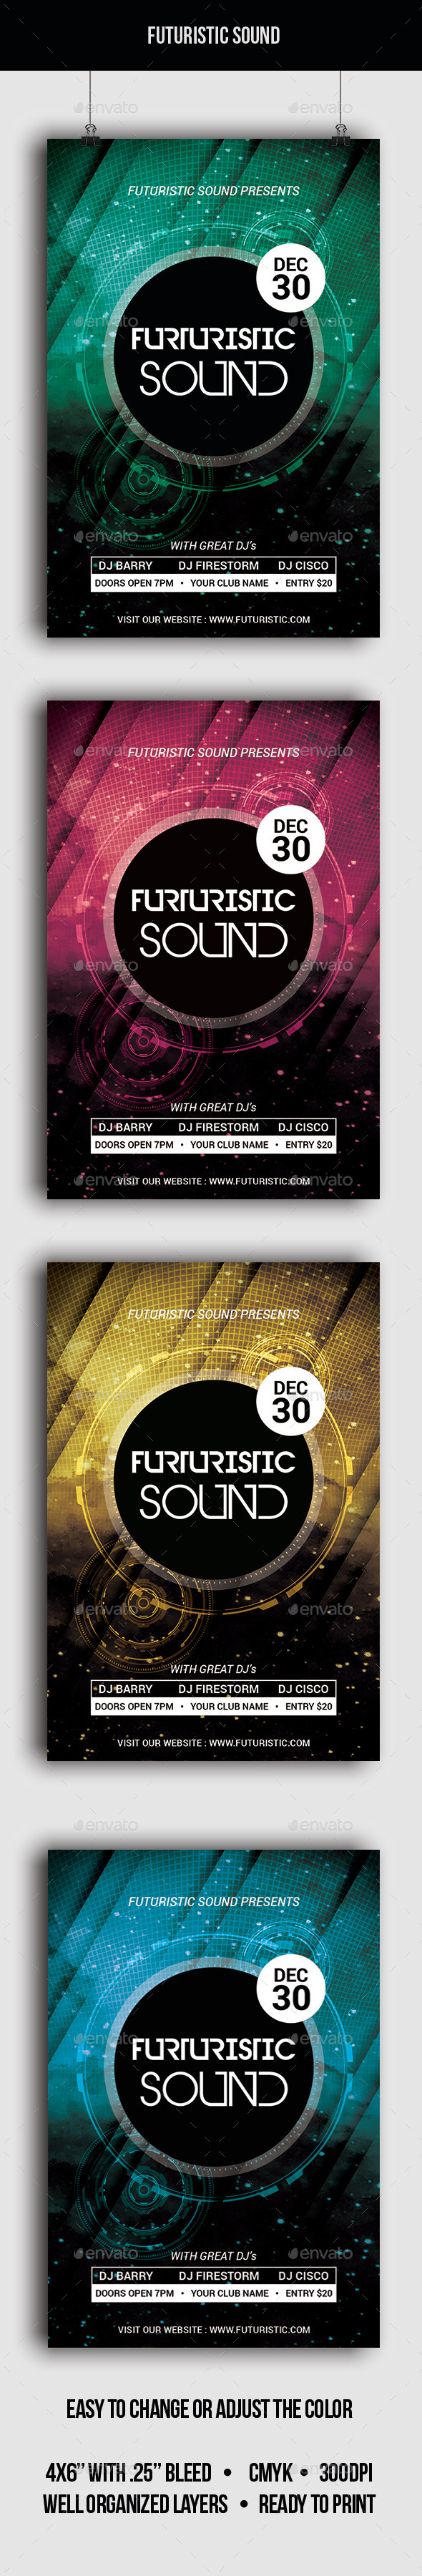 Futuristic Sound - Flyer - Clubs & Parties Events